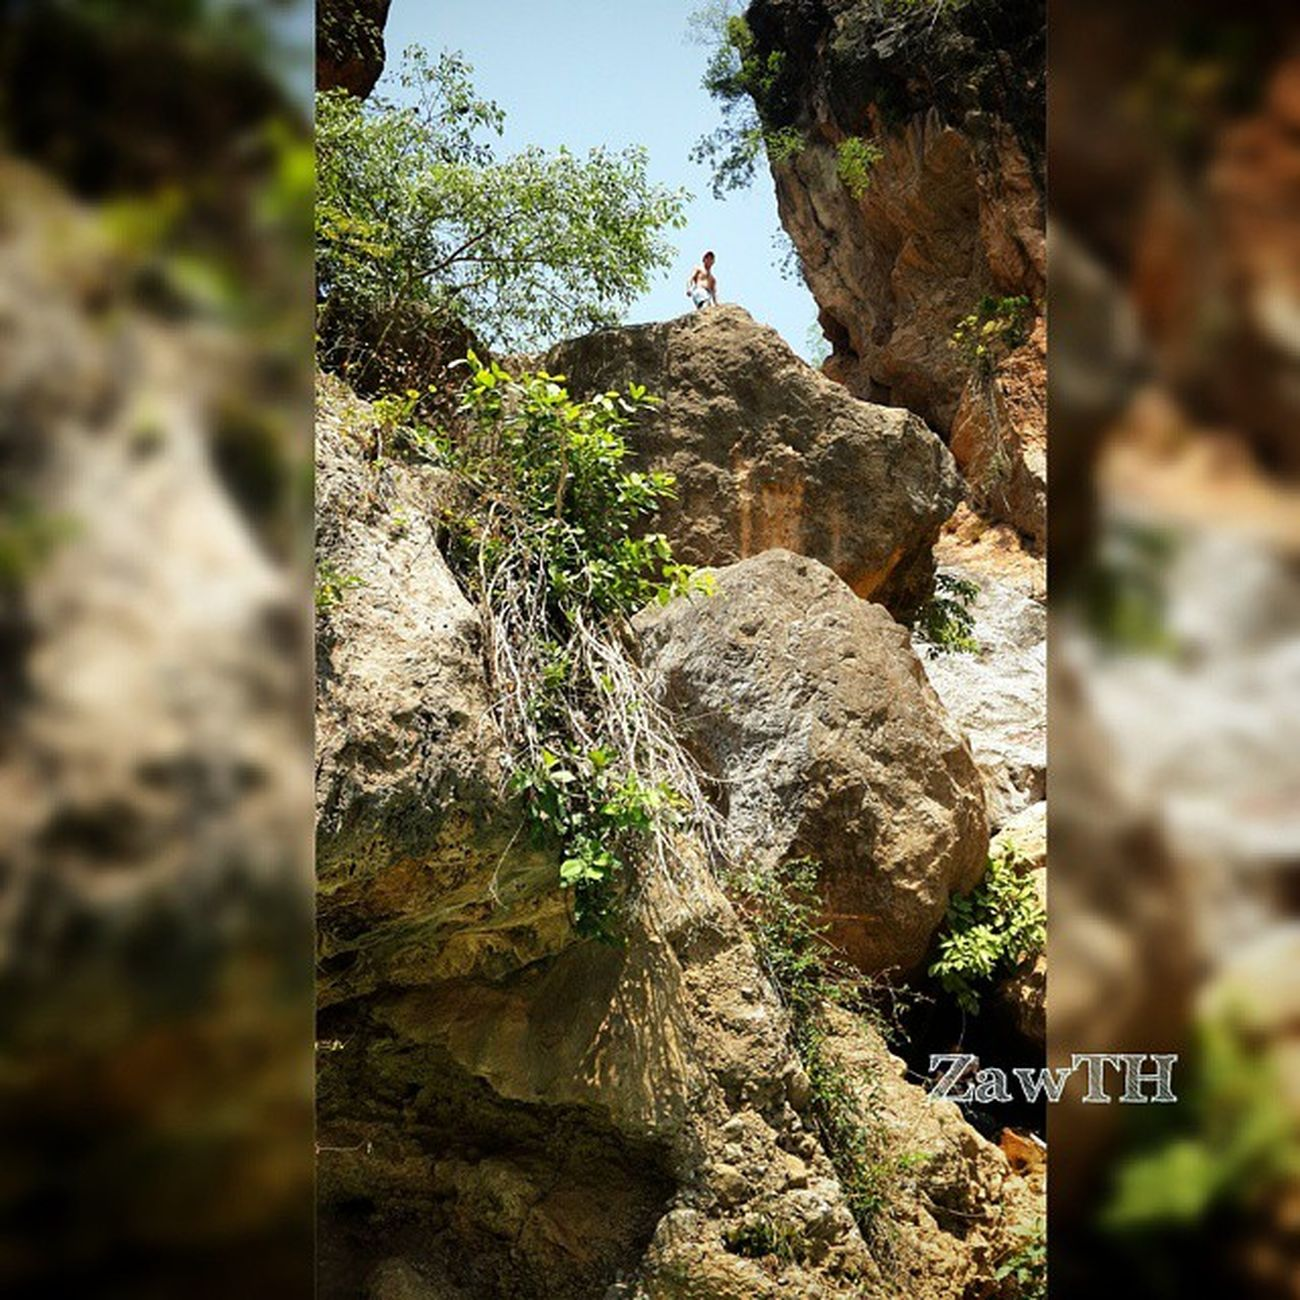 Can u see me? ✌ RockClimbing Waterfall Deedokewaterfall Cliff Adventure AdventureLovers Naturelovers Natureshot  Nature Mycapture Mandalay Myanmar Burma Exploremyanmar Myanmarphotos Igersmandalay Igersmyanmar Burmeseigers Igersoftheday Bsn_family Hiking Swimming Treaking Asianguy Burmeseguy nepaleseguy galaxygrand2 zawth